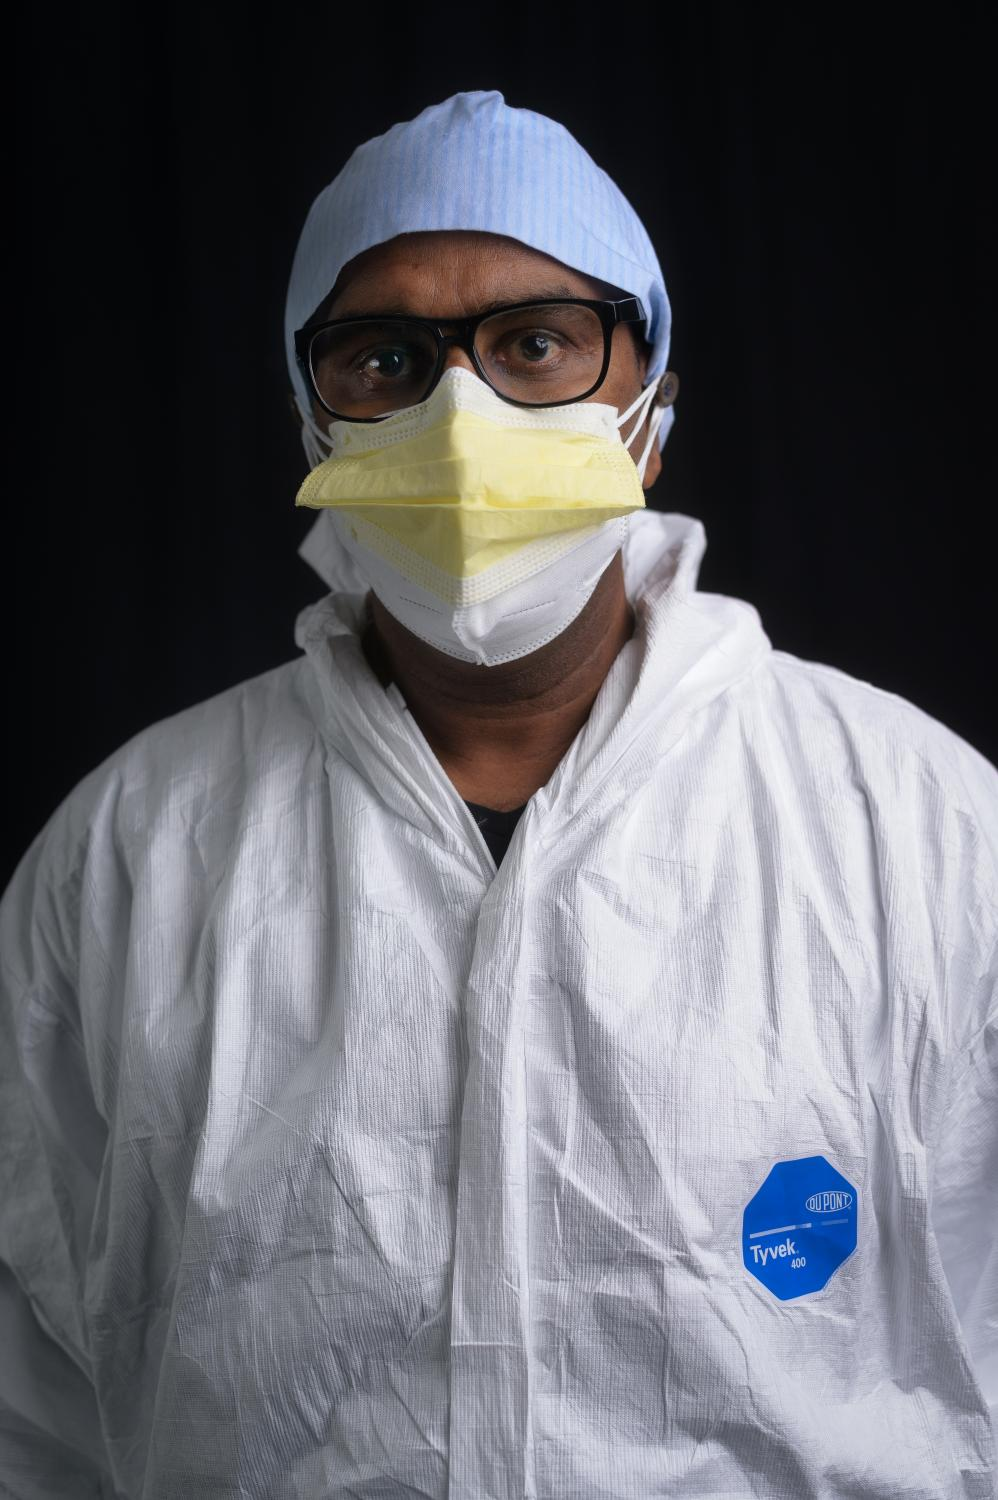 W. Costa, 50, originally from Sri Lanka, poses for a portrait inside the COVID unit at Clove Lakes Nursing Home in Staten Island, NY where he works as acertified nursing assistant